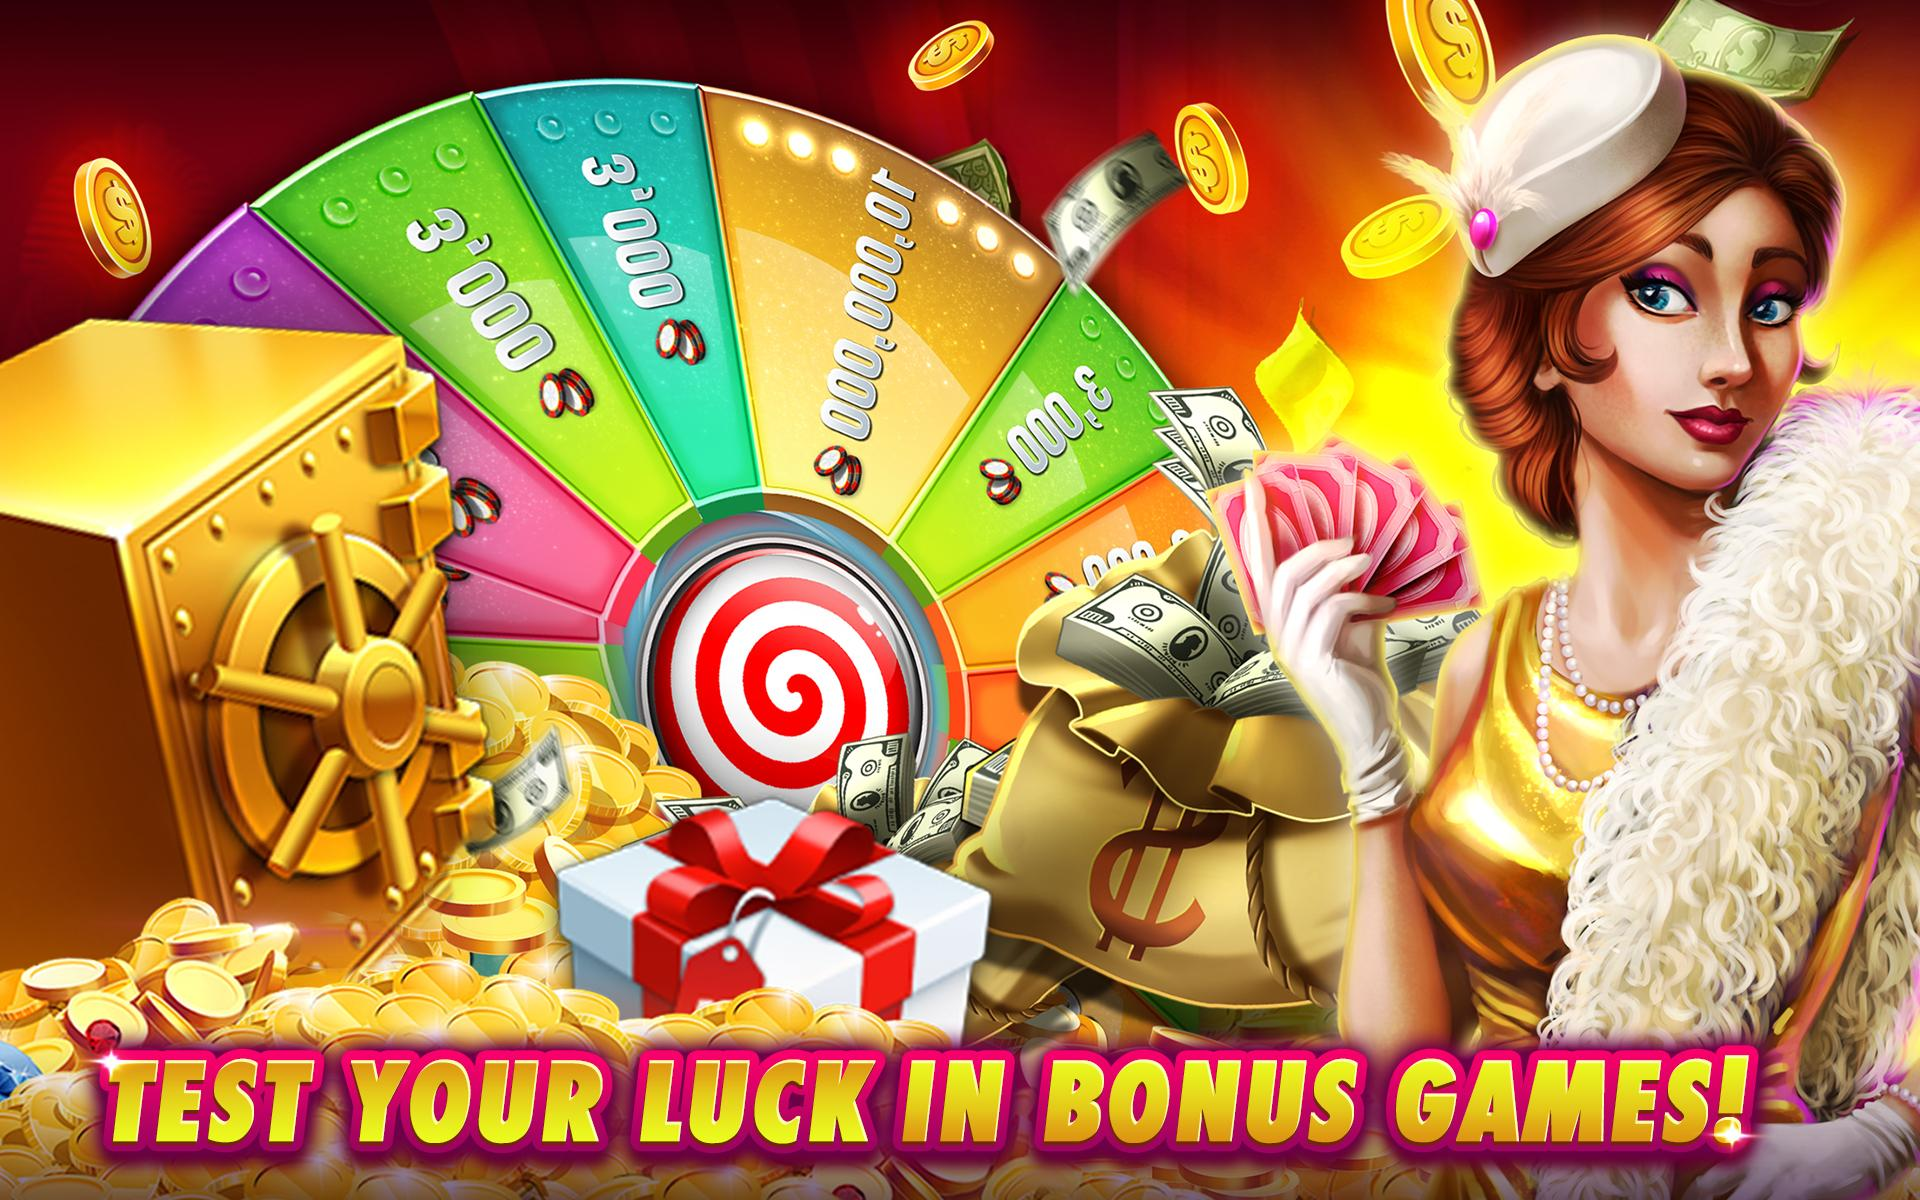 Lotto free spins